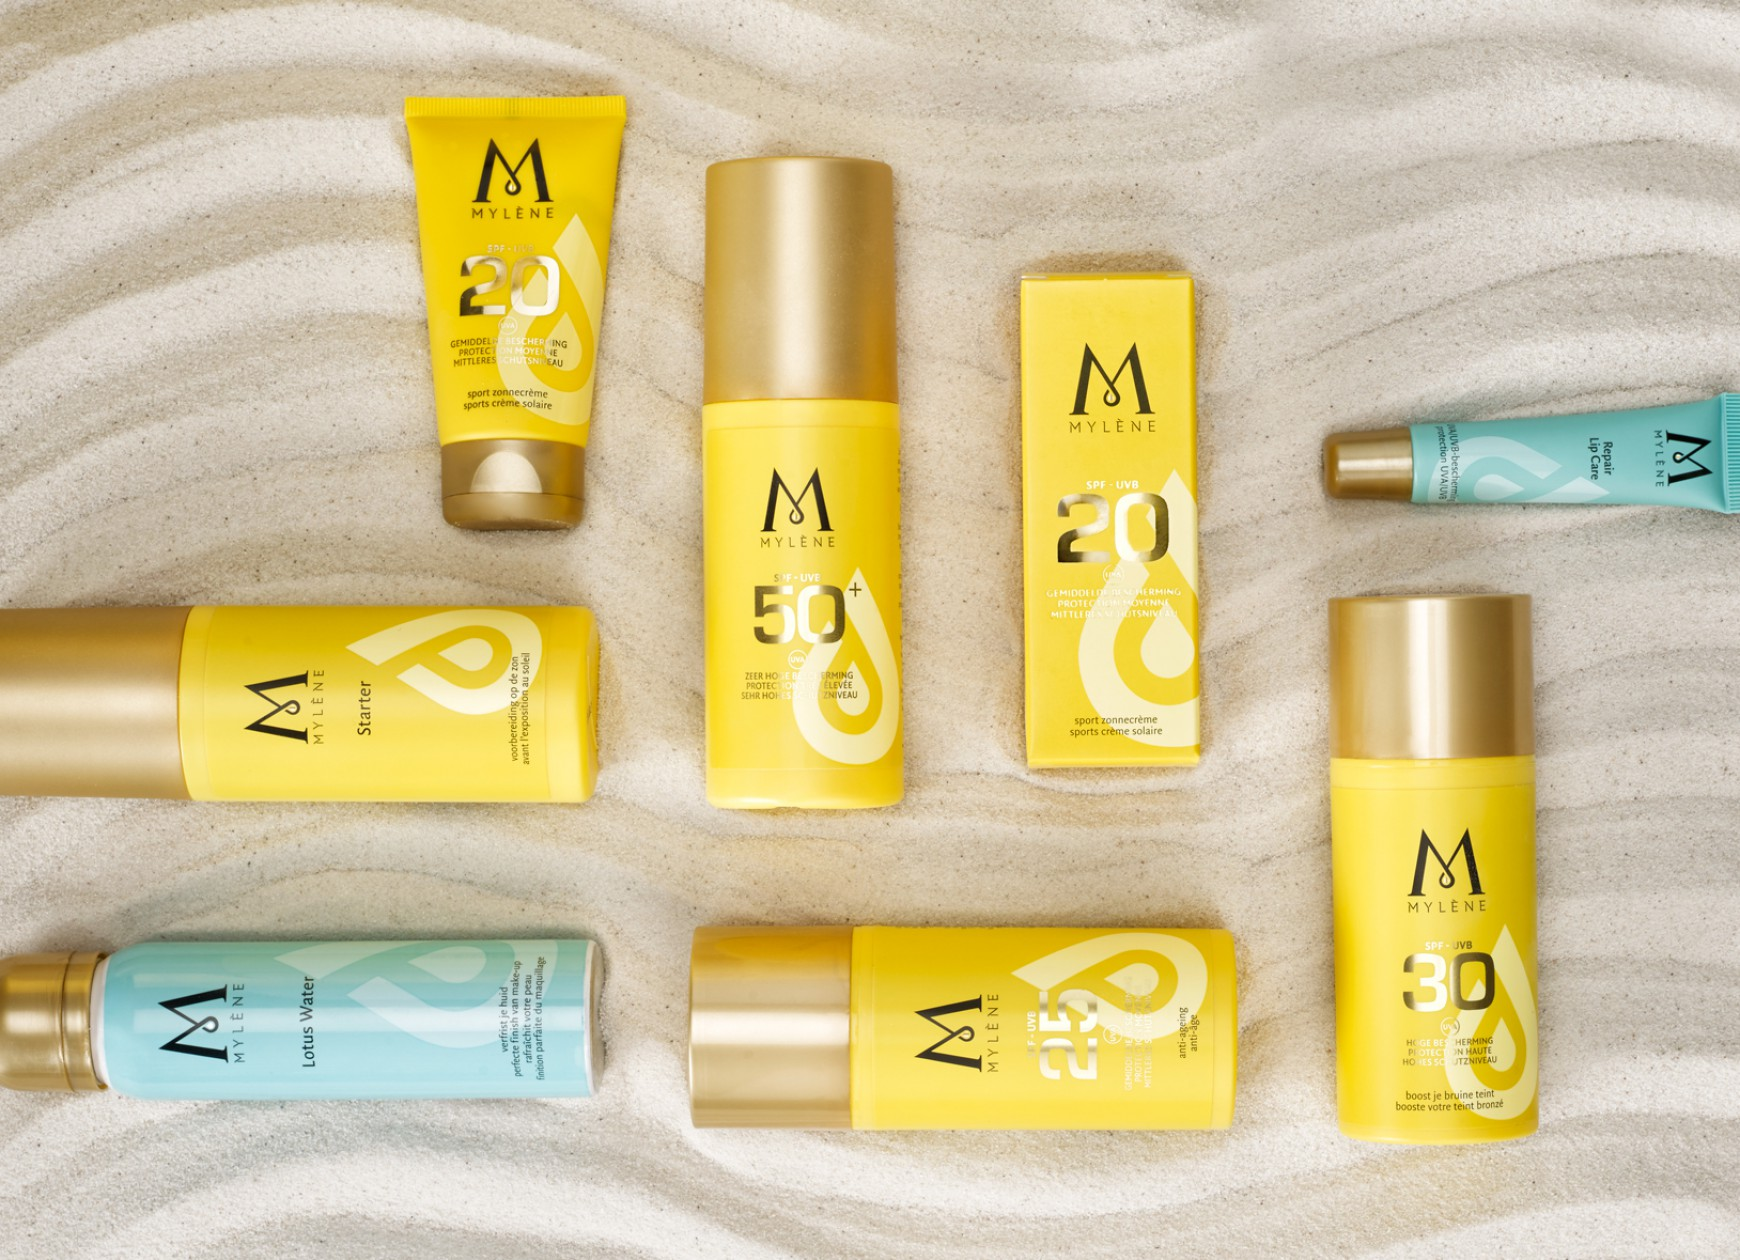 Quatre Mains package design - suncare, mylène, quatre mains